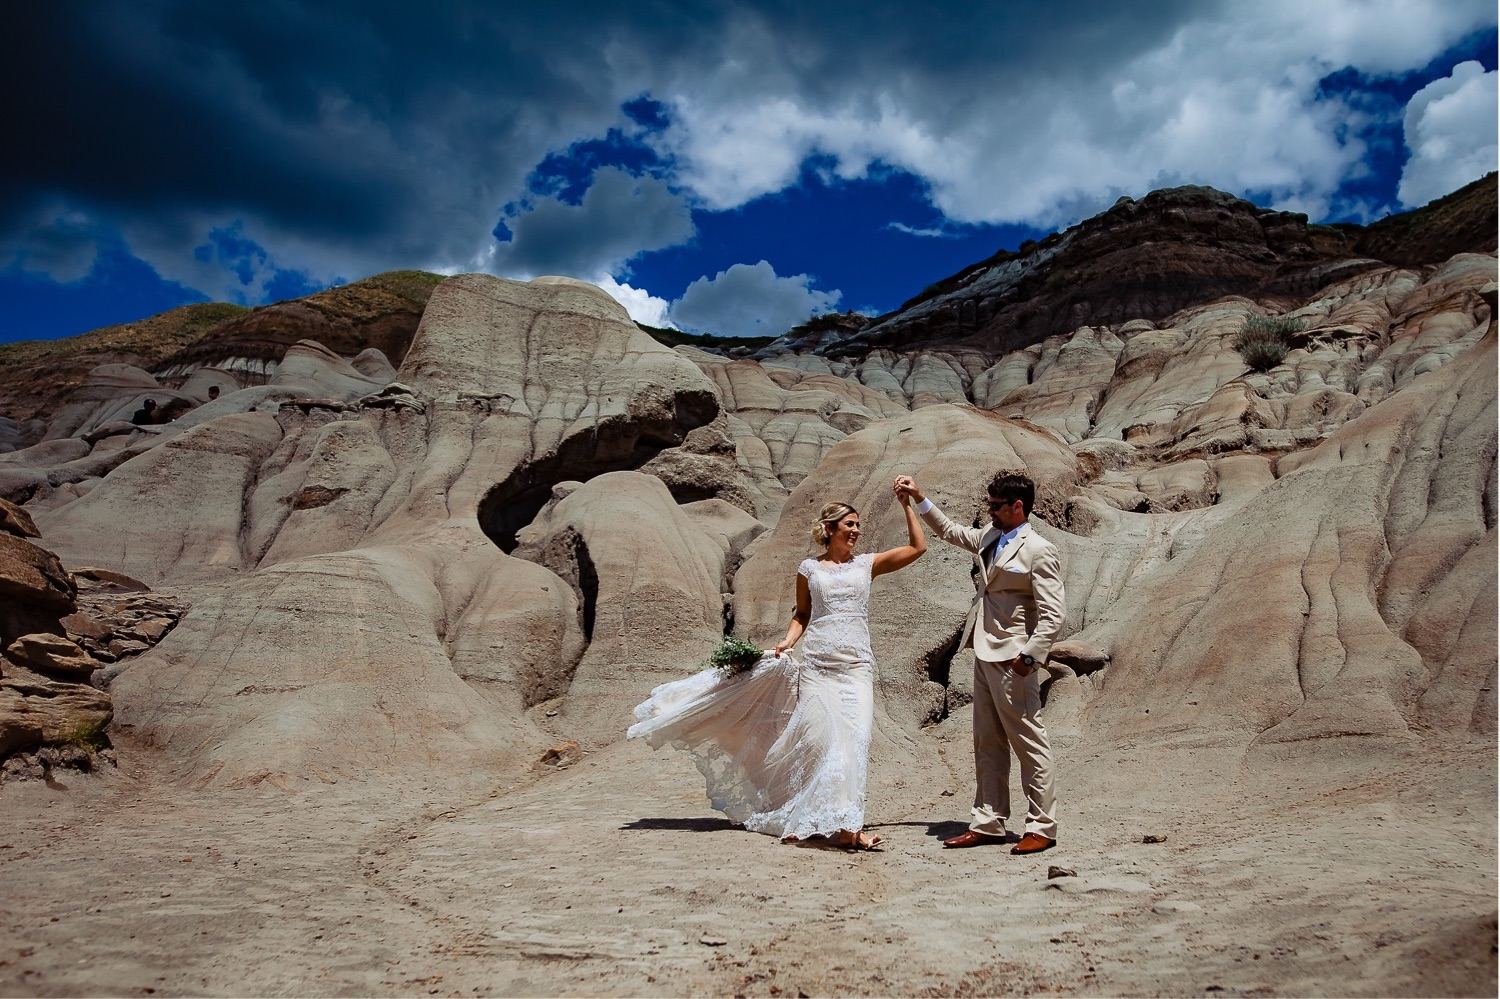 01_Shannon and Dylan June 15 ALL RAW0595_Canyon_Groom_Horseshoe_Drumheller_Bride_Badlands_Wedding_BadlandCommunityFacility.jpg